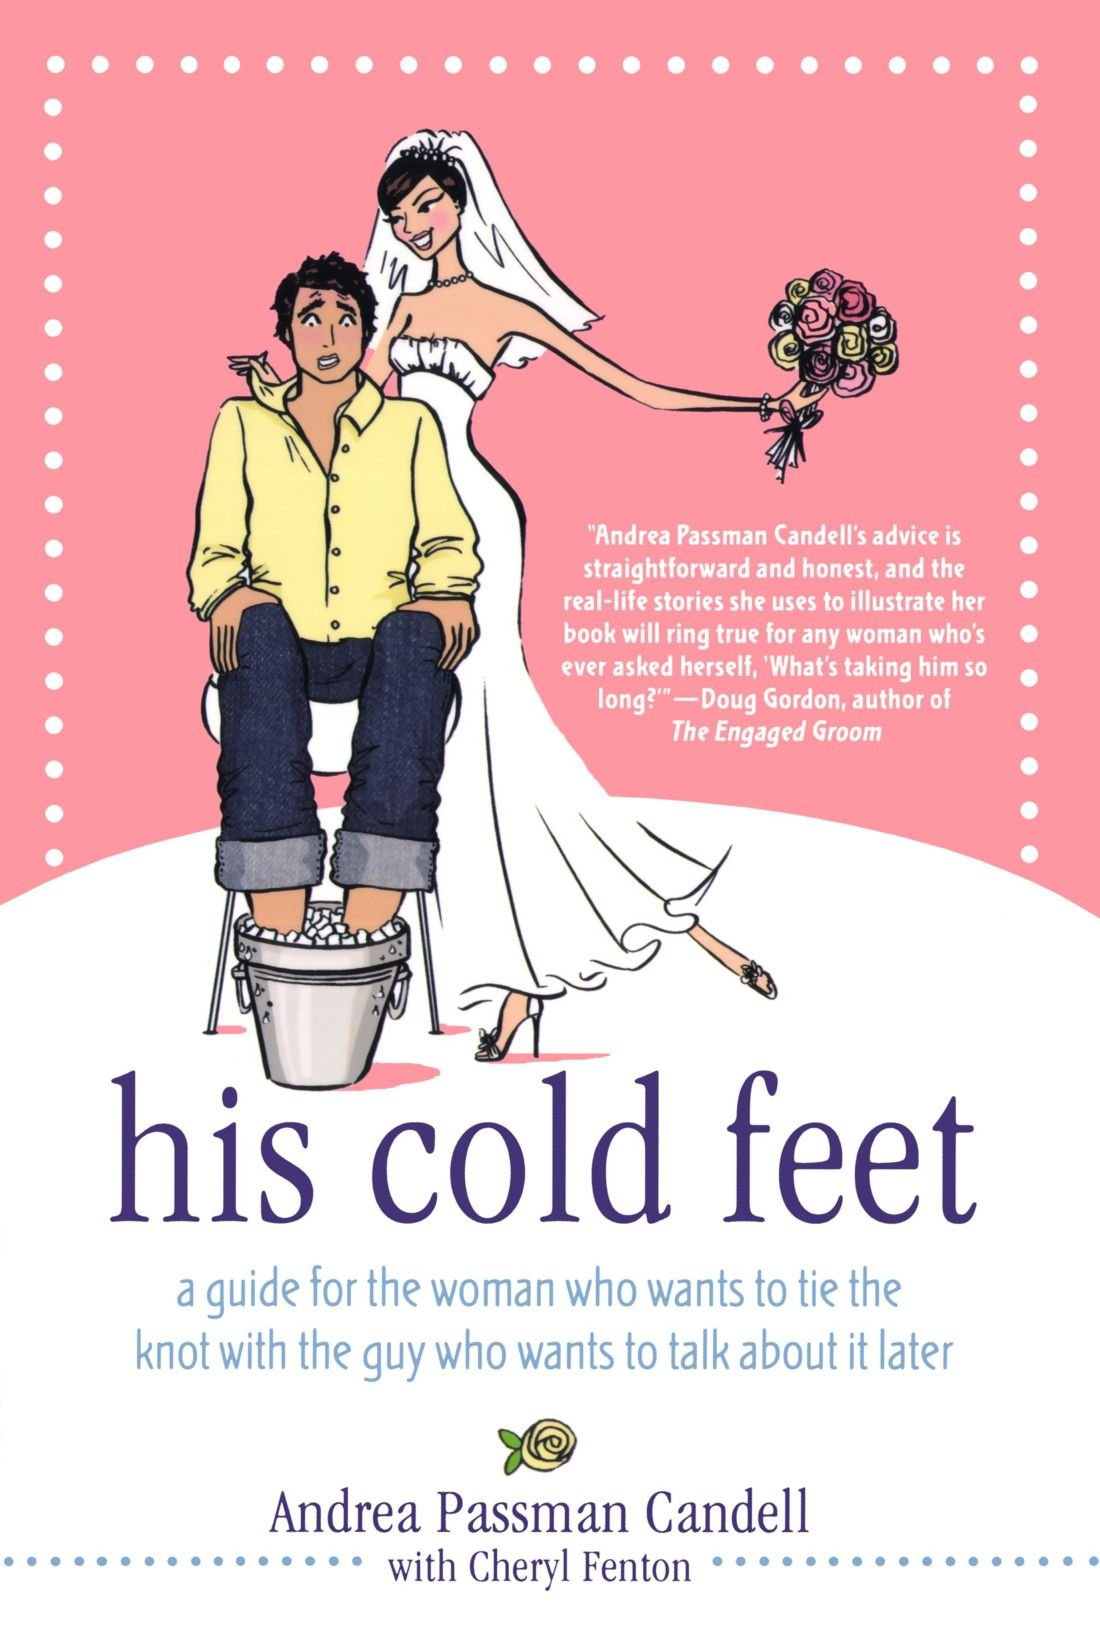 His cold feet a guide for the woman who wants to tie the knot his cold feet a guide for the woman who wants to tie the knot with the guy who wants to talk about it later andrea passman candell cheryl fenton junglespirit Image collections